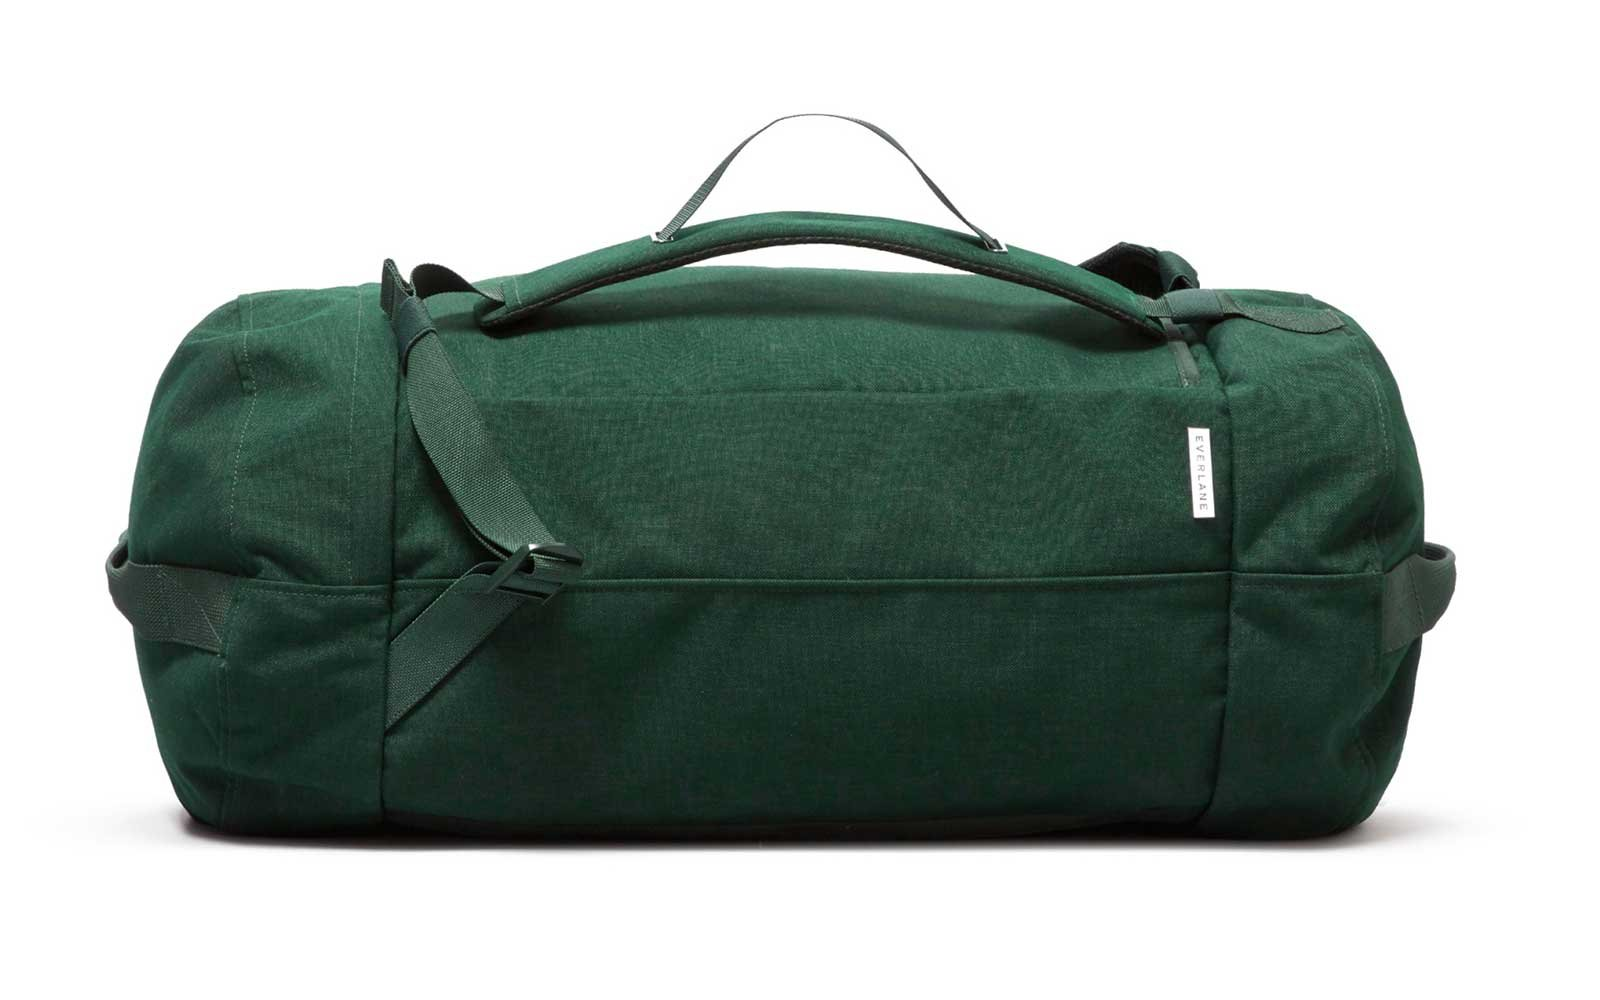 13 Convertible Bags That Do Double (and Triple) Duty